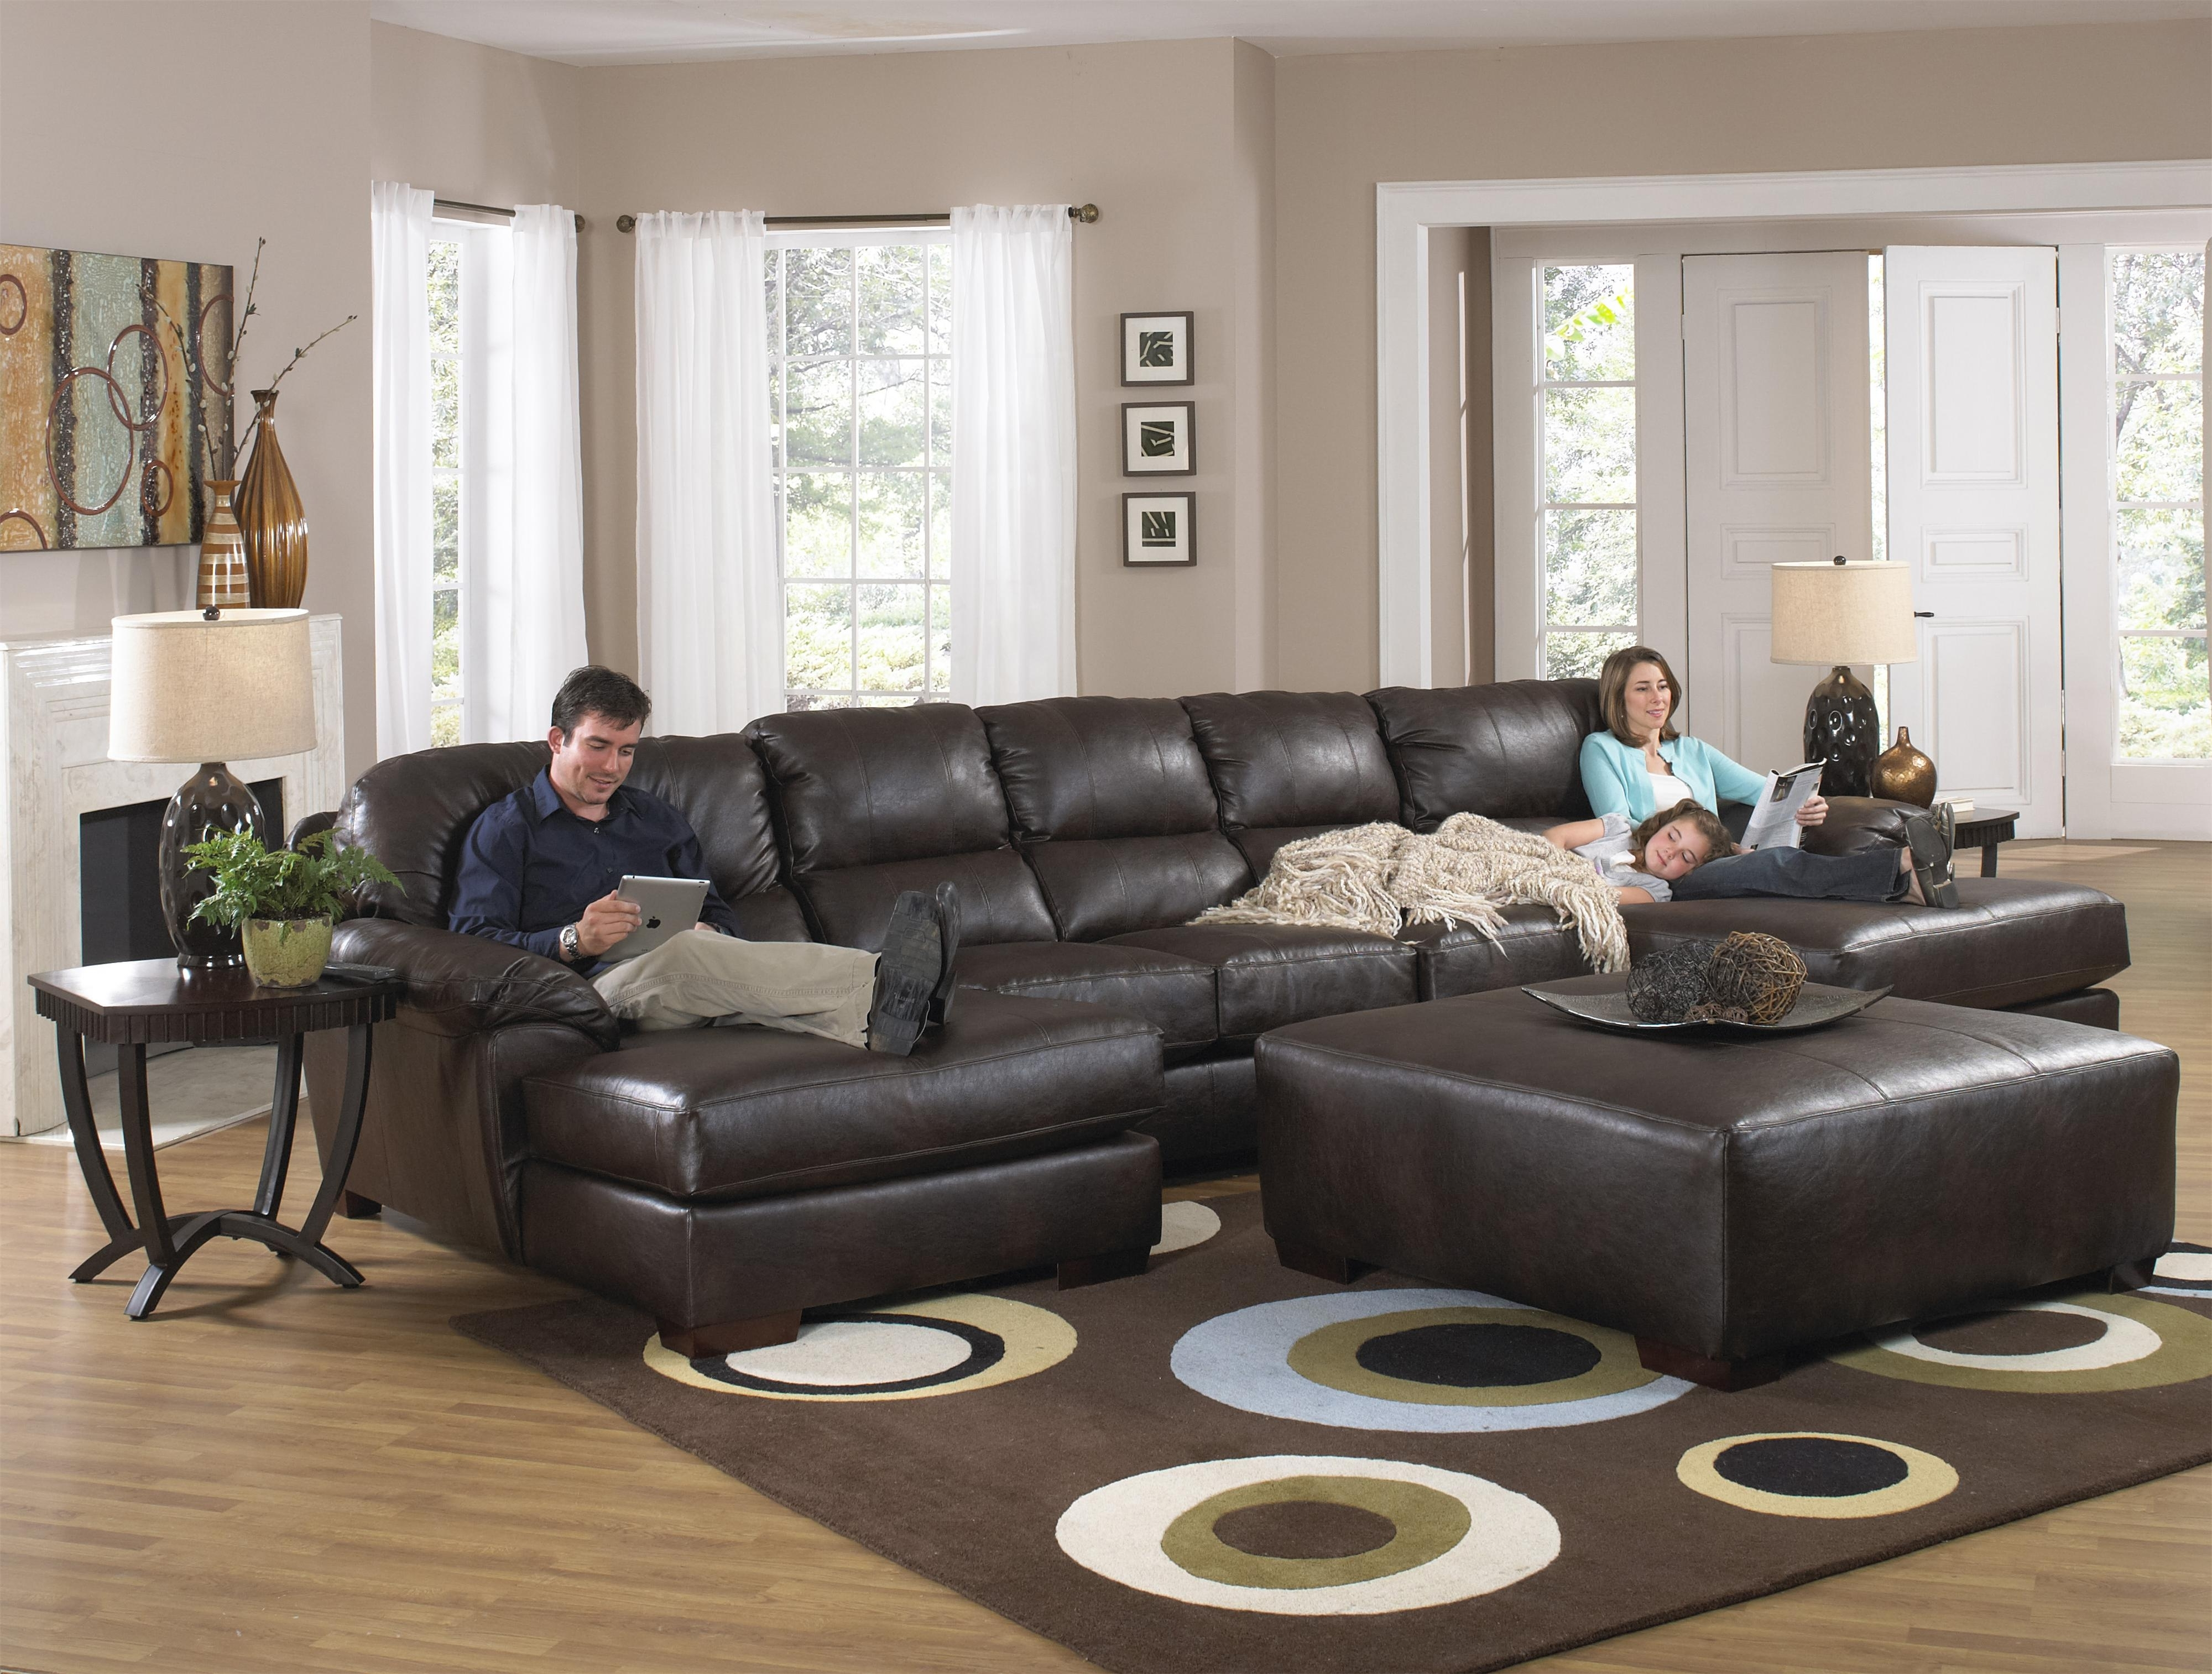 Recent Sectional Sofas With Chaise Lounge And Ottoman Within Sofa : Beautiful Large Sectional Sofa With Chaise L Shaped Cream (View 10 of 20)